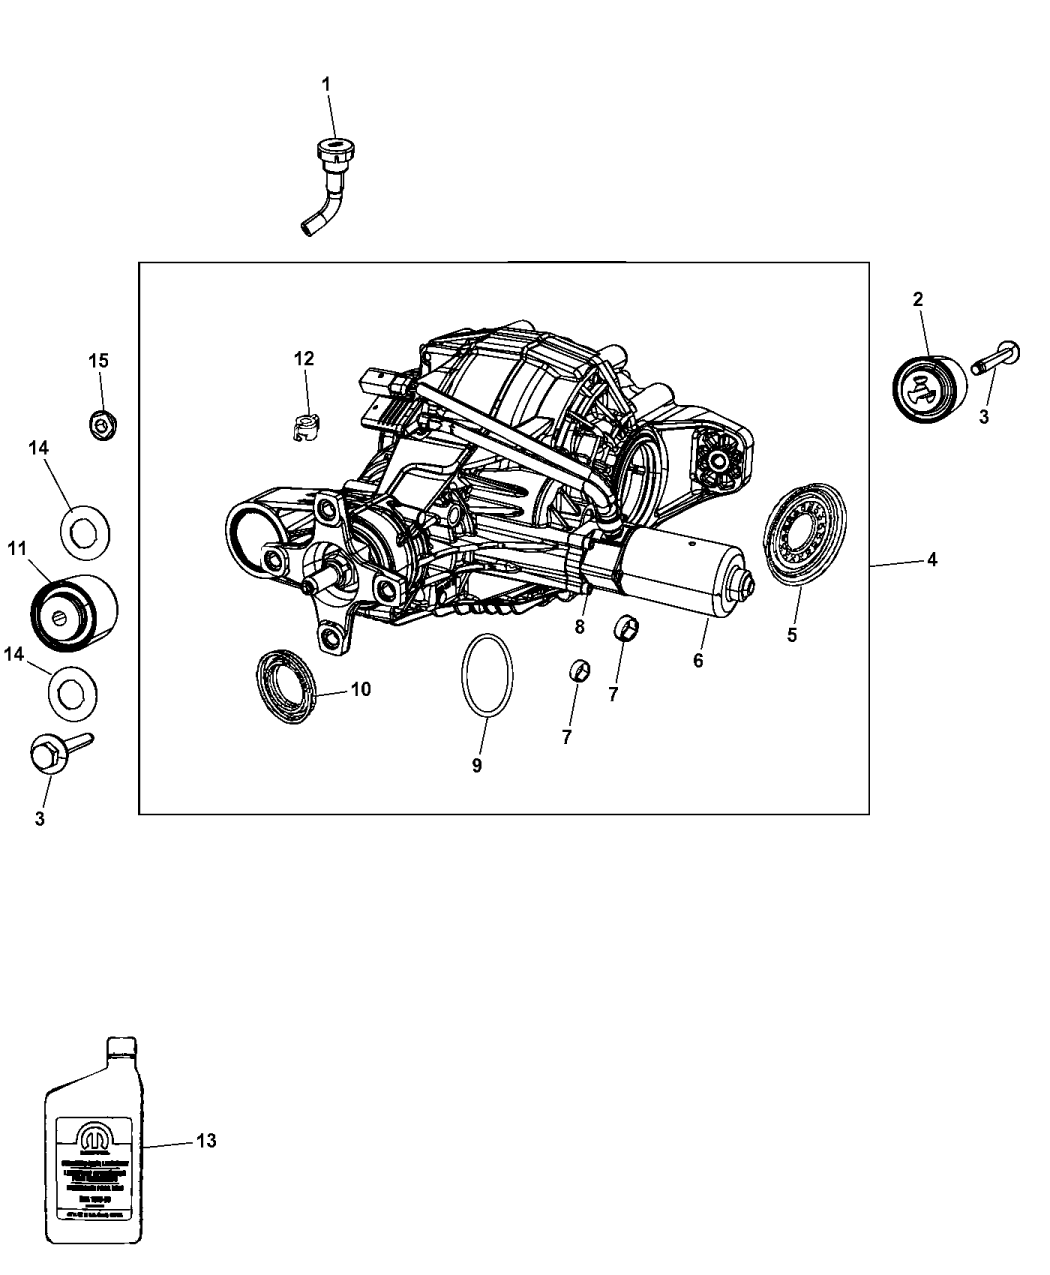 2015 Jeep Grand Cherokee Axle Assembly And Components of Rear Axle